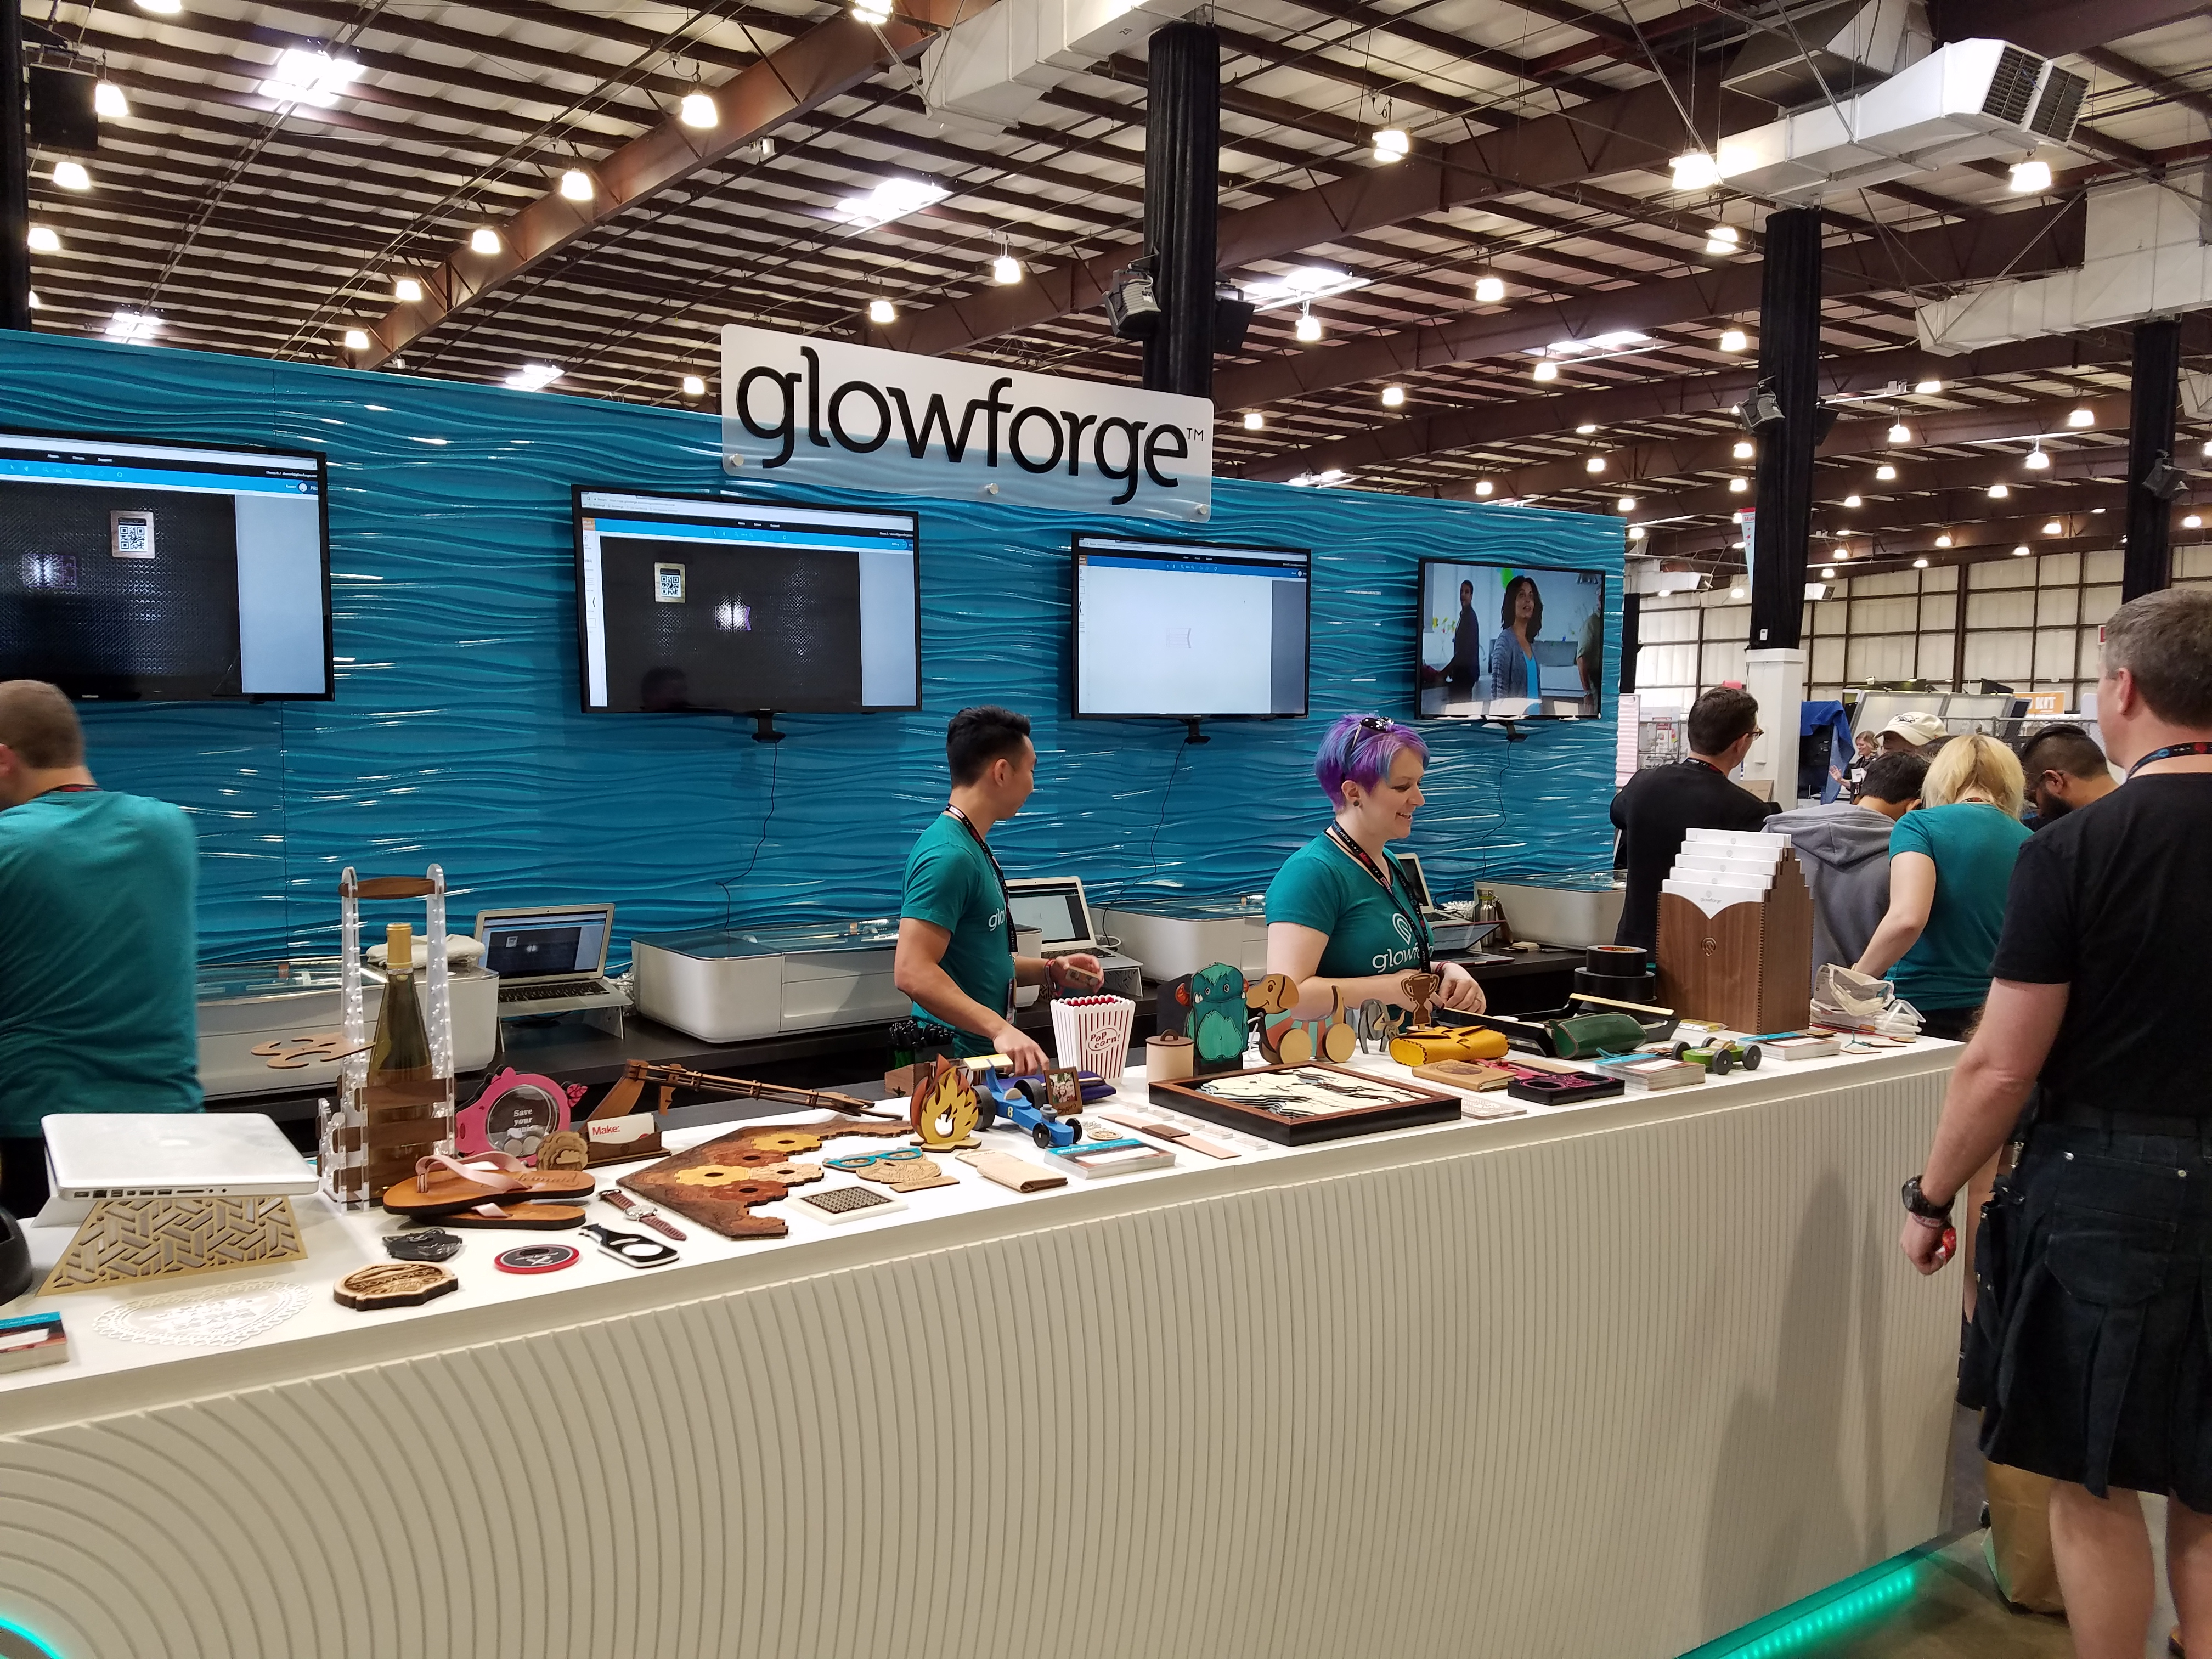 Glowforge Has Come To Maker Faire With News